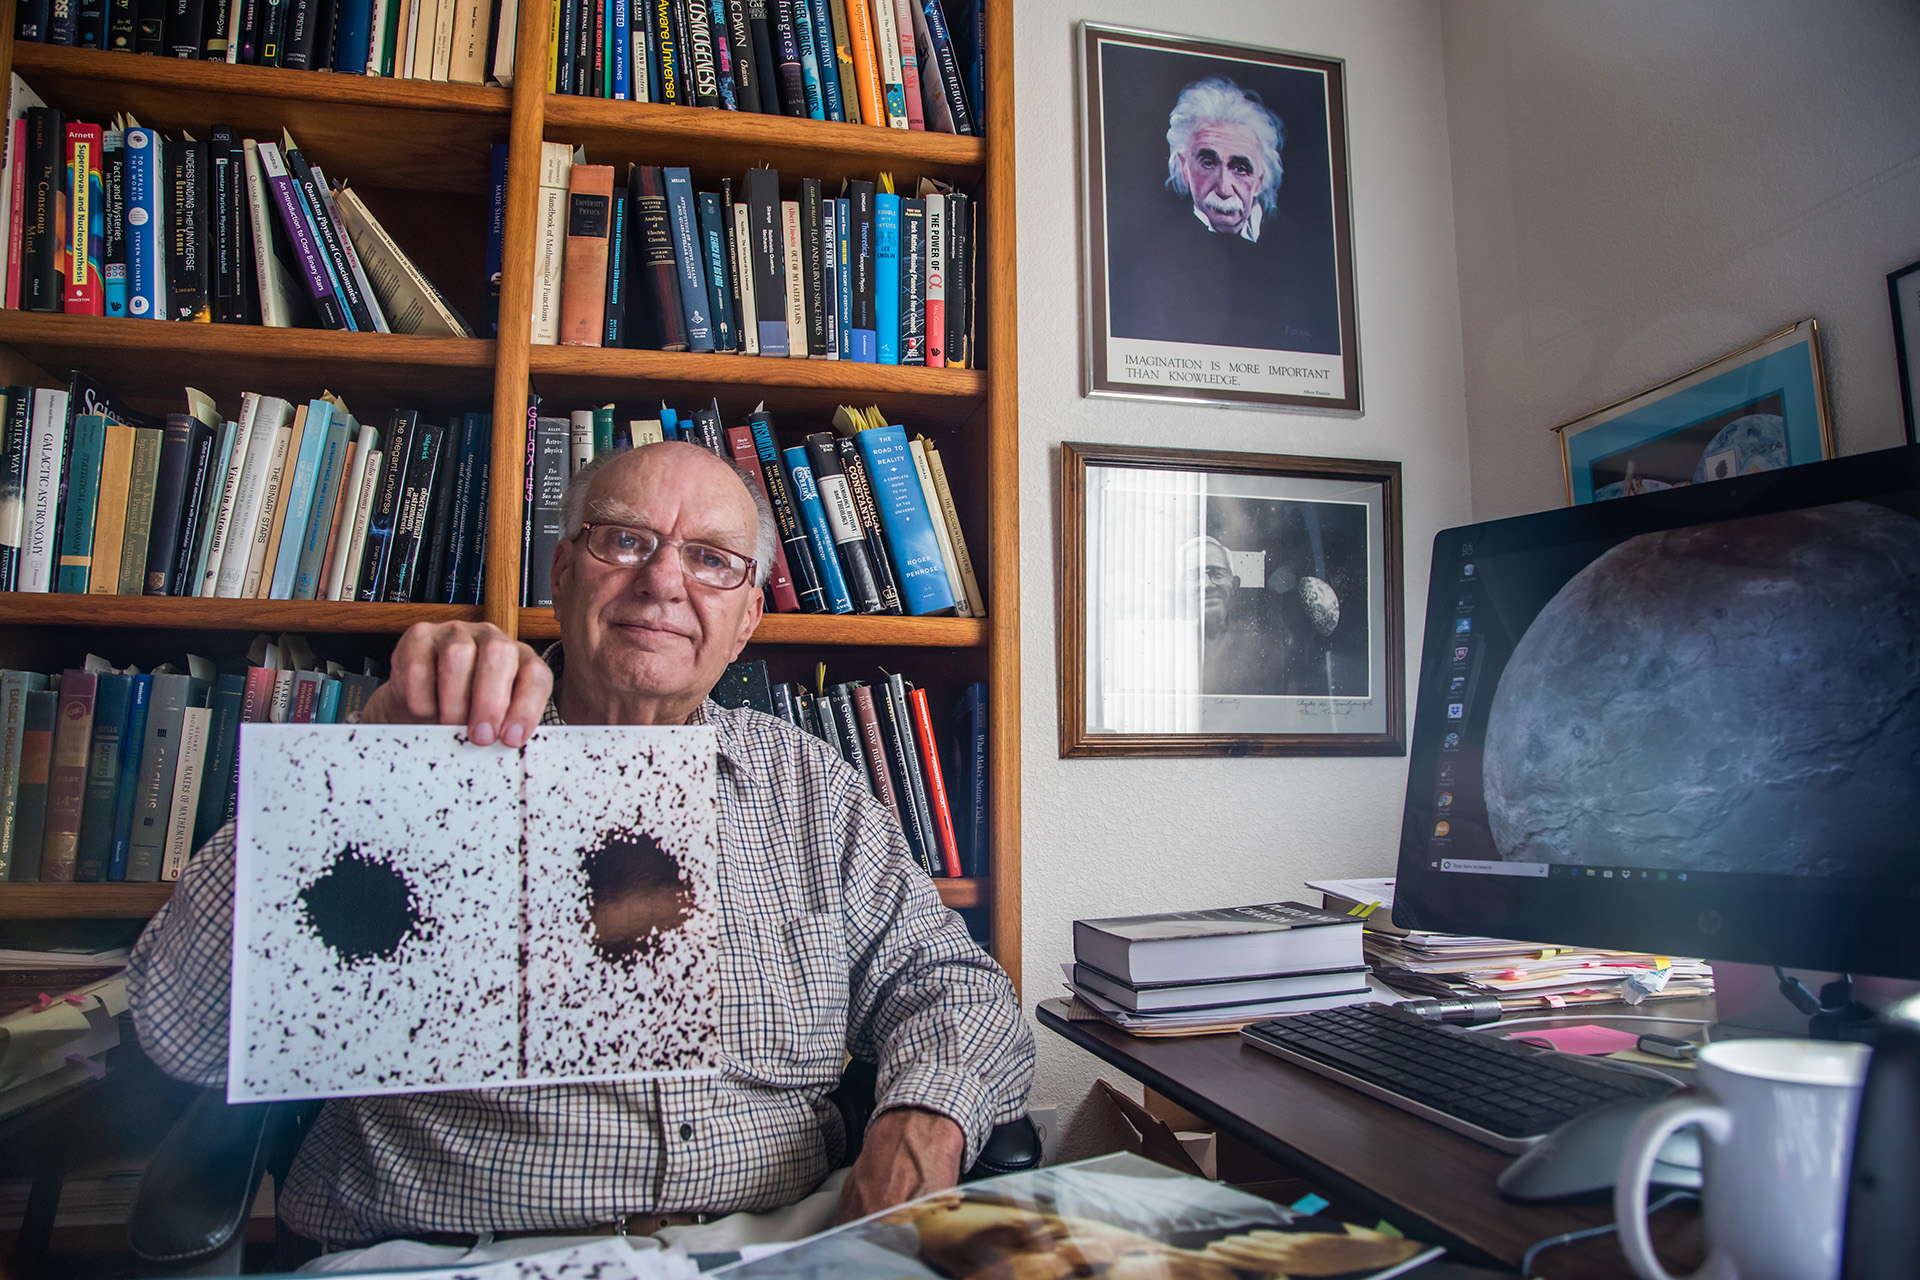 Jim Christy holding his original Charon discovery image in 2018.